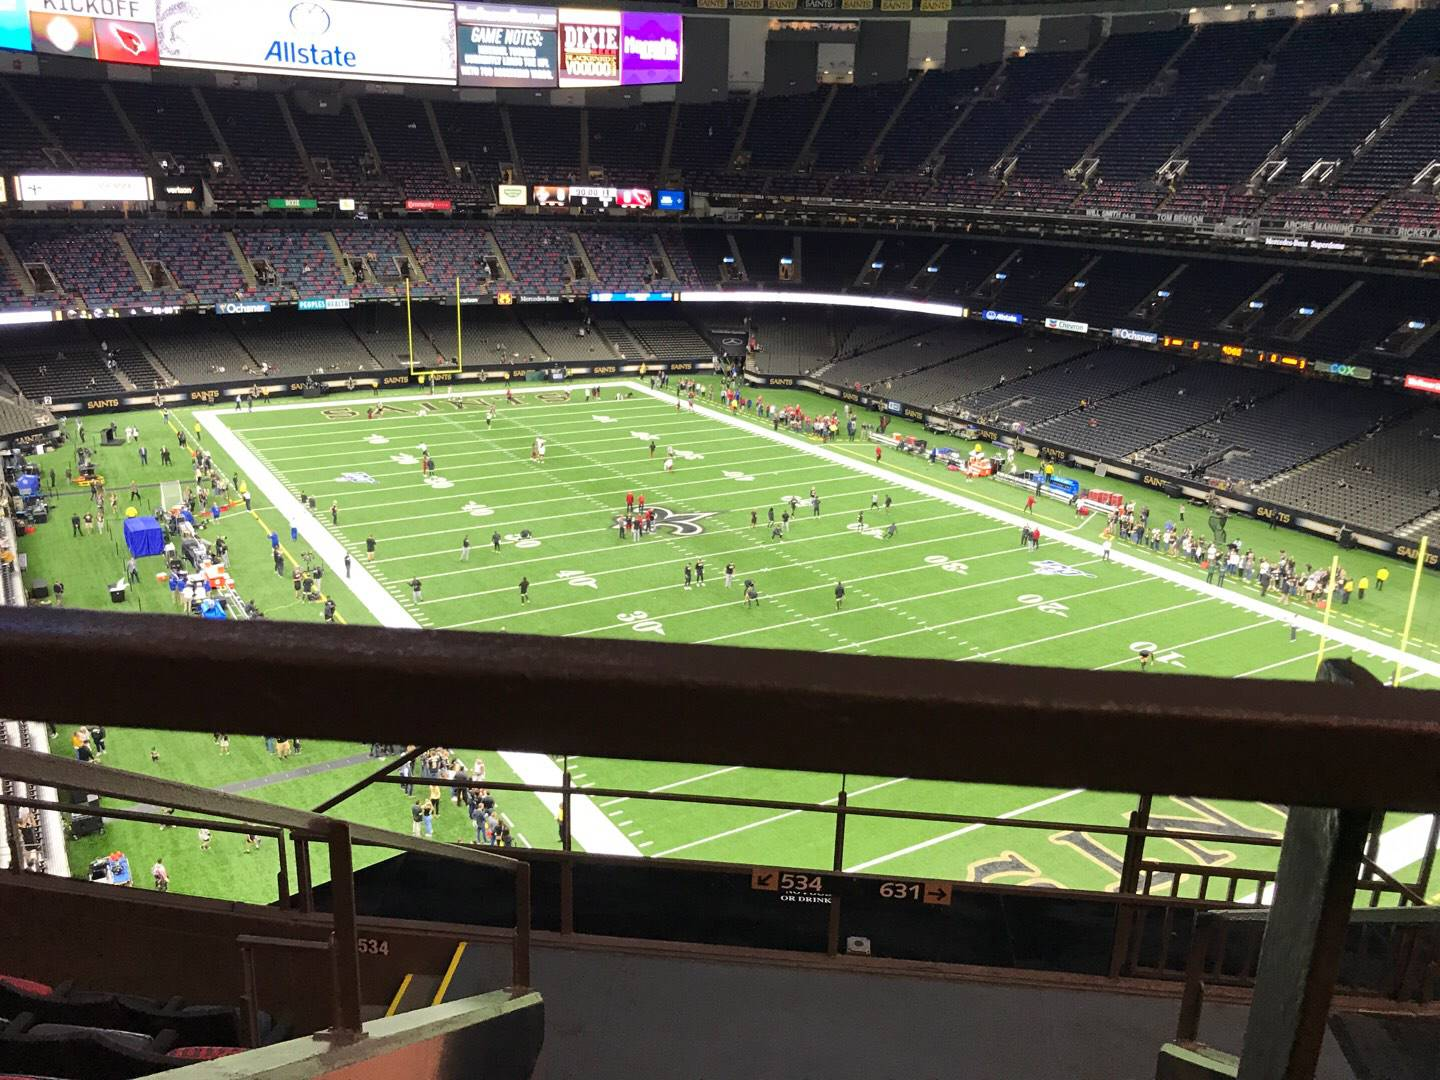 Mercedes-Benz Superdome Section 633 Row 6 Seat 3